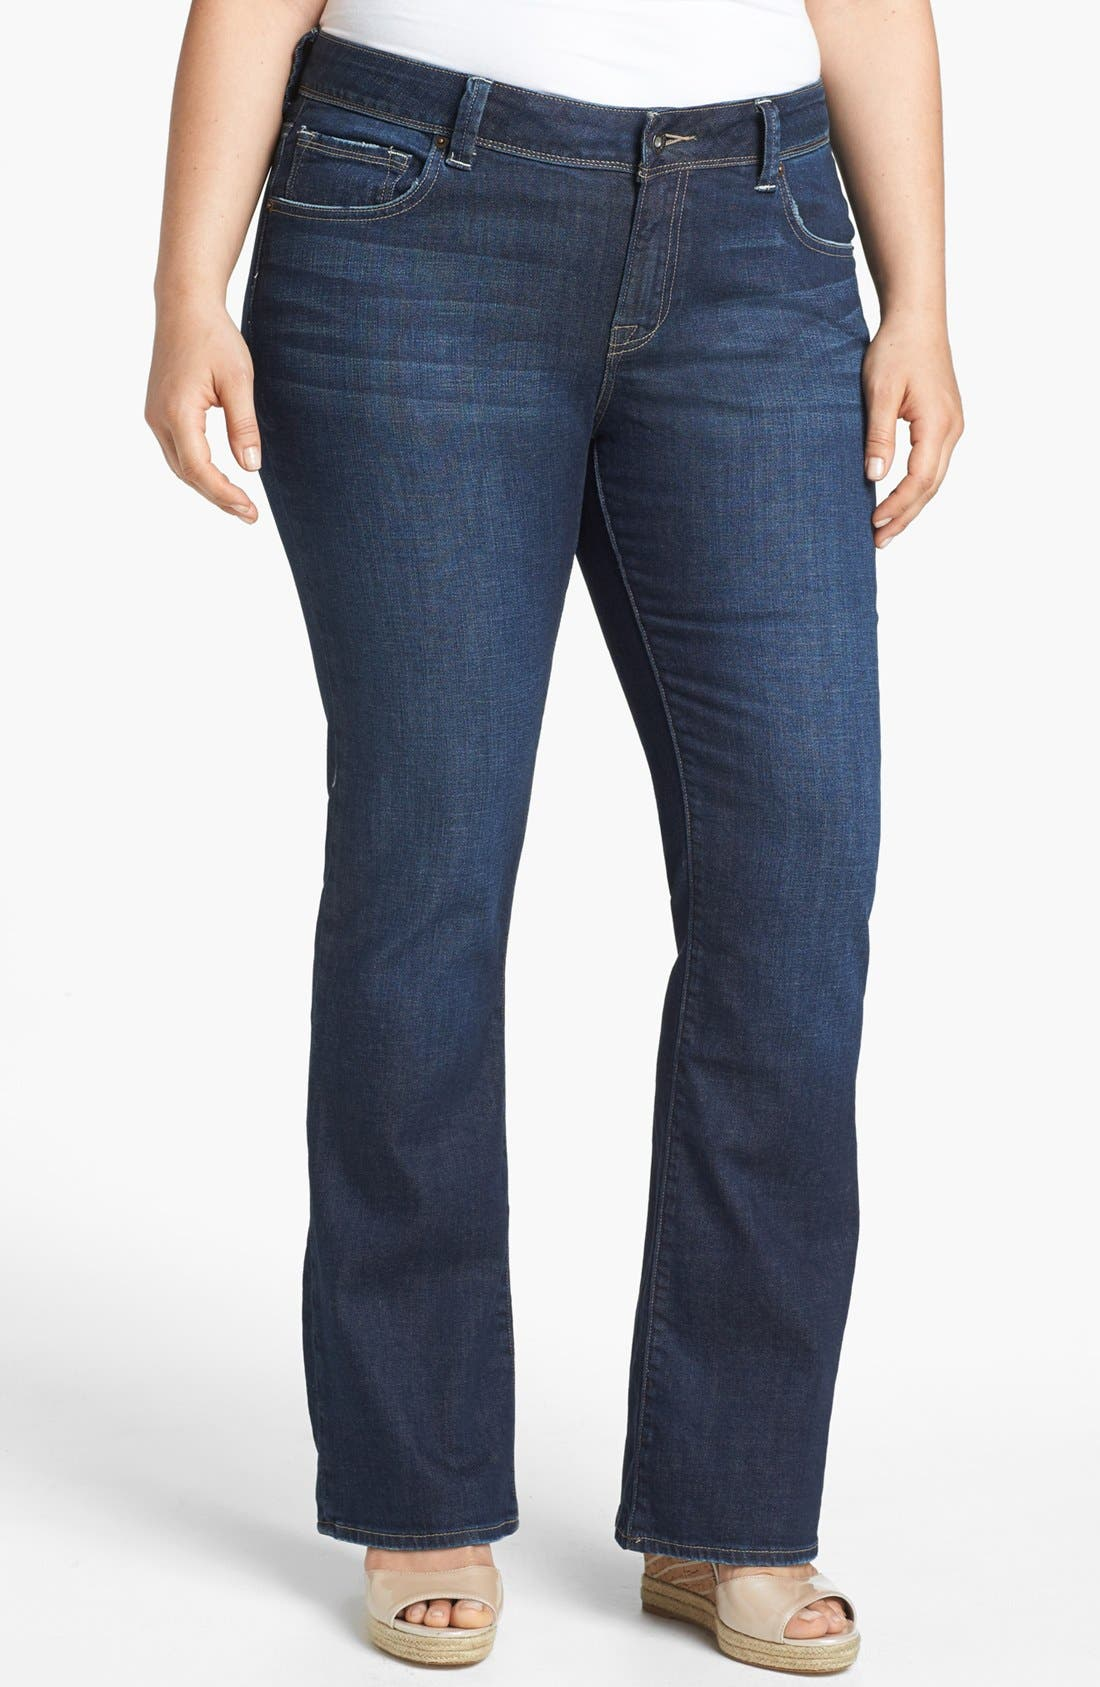 Alternate Image 1 Selected - Lucky Brand 'Georgia' Bootcut Jeans (Plus Size)